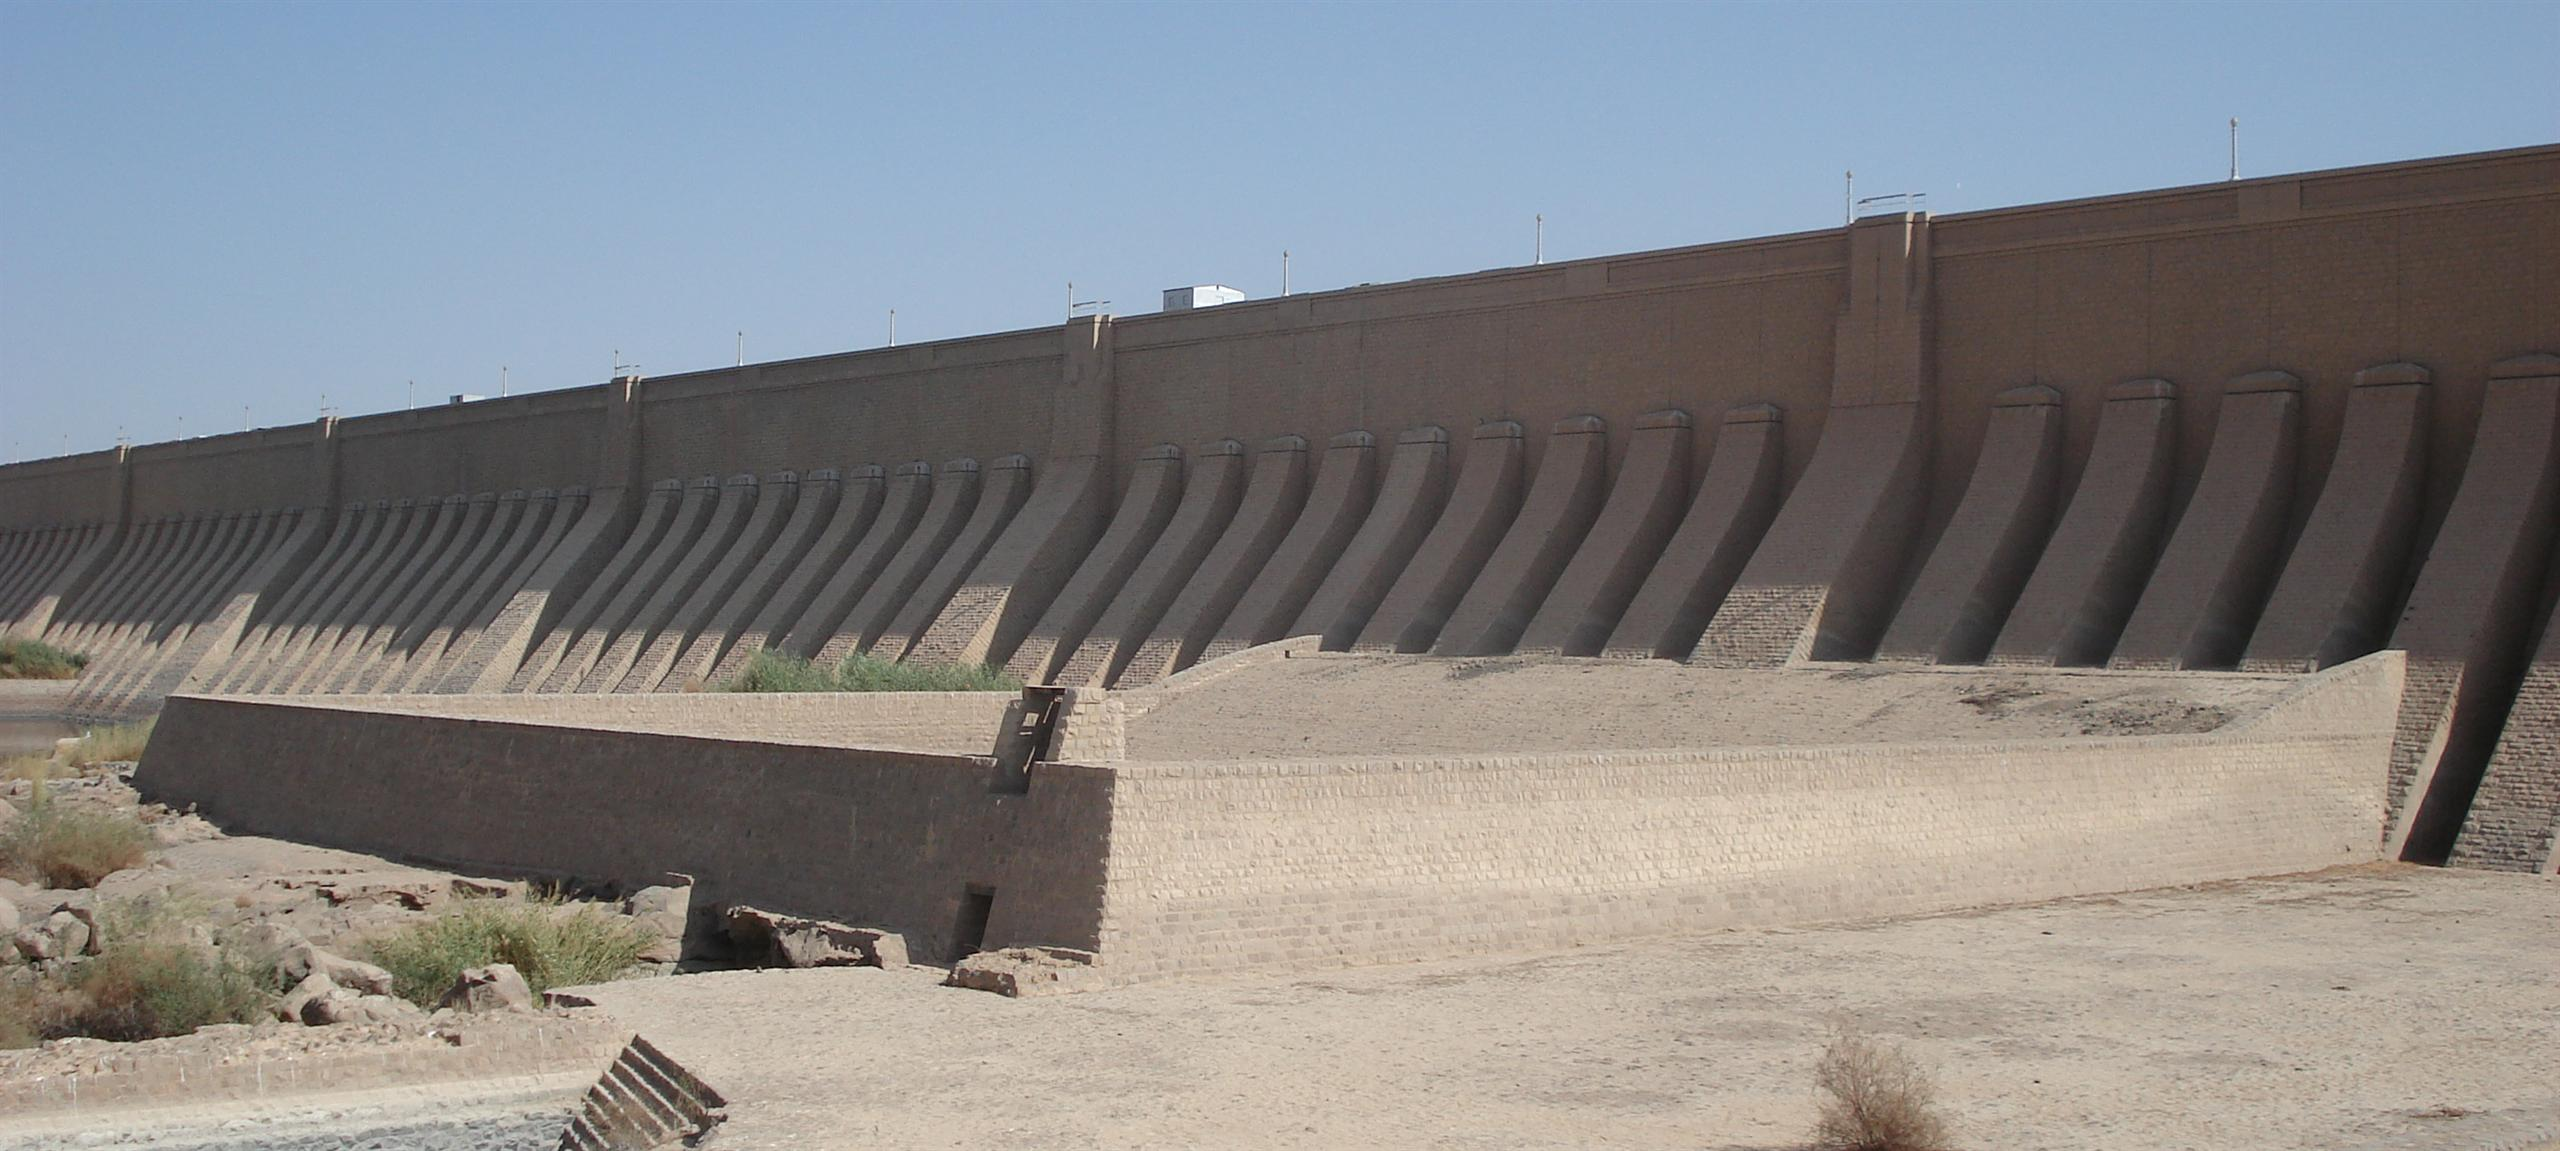 The original Aswan Dam in Egypt